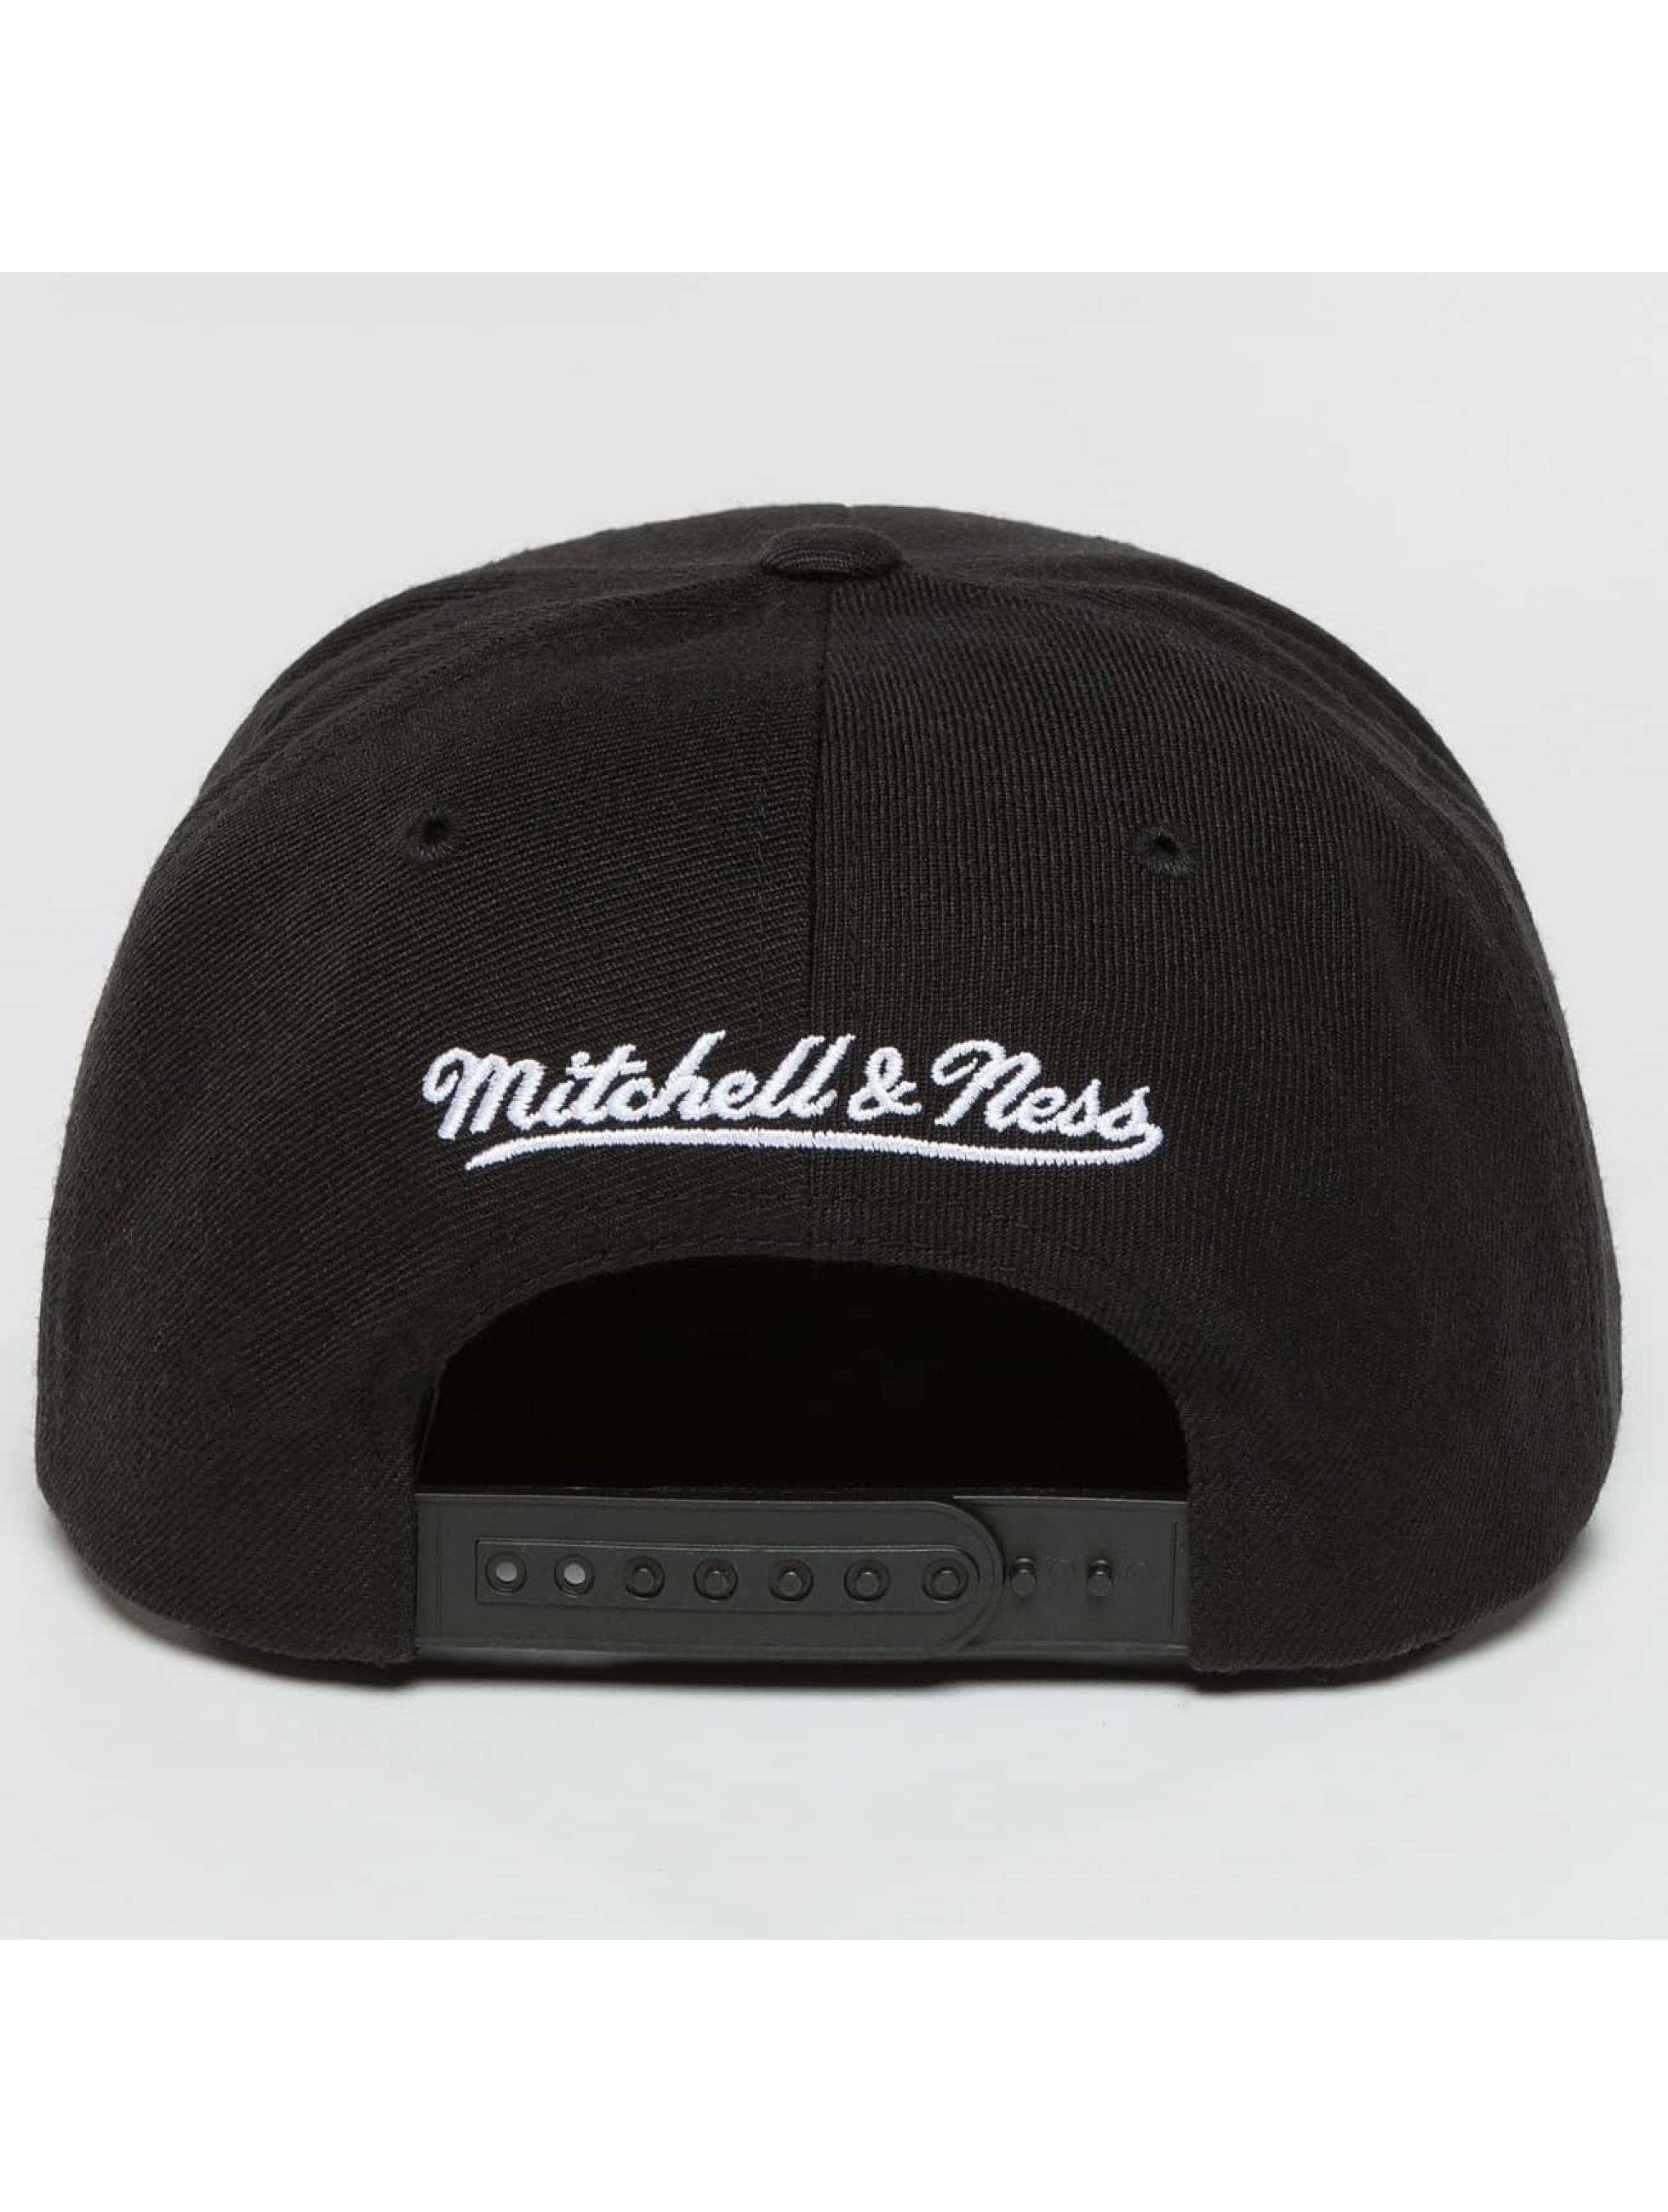 Mitchell & Ness Casquette Snapback & Strapback Full Dollar Dallas Mavericks noir